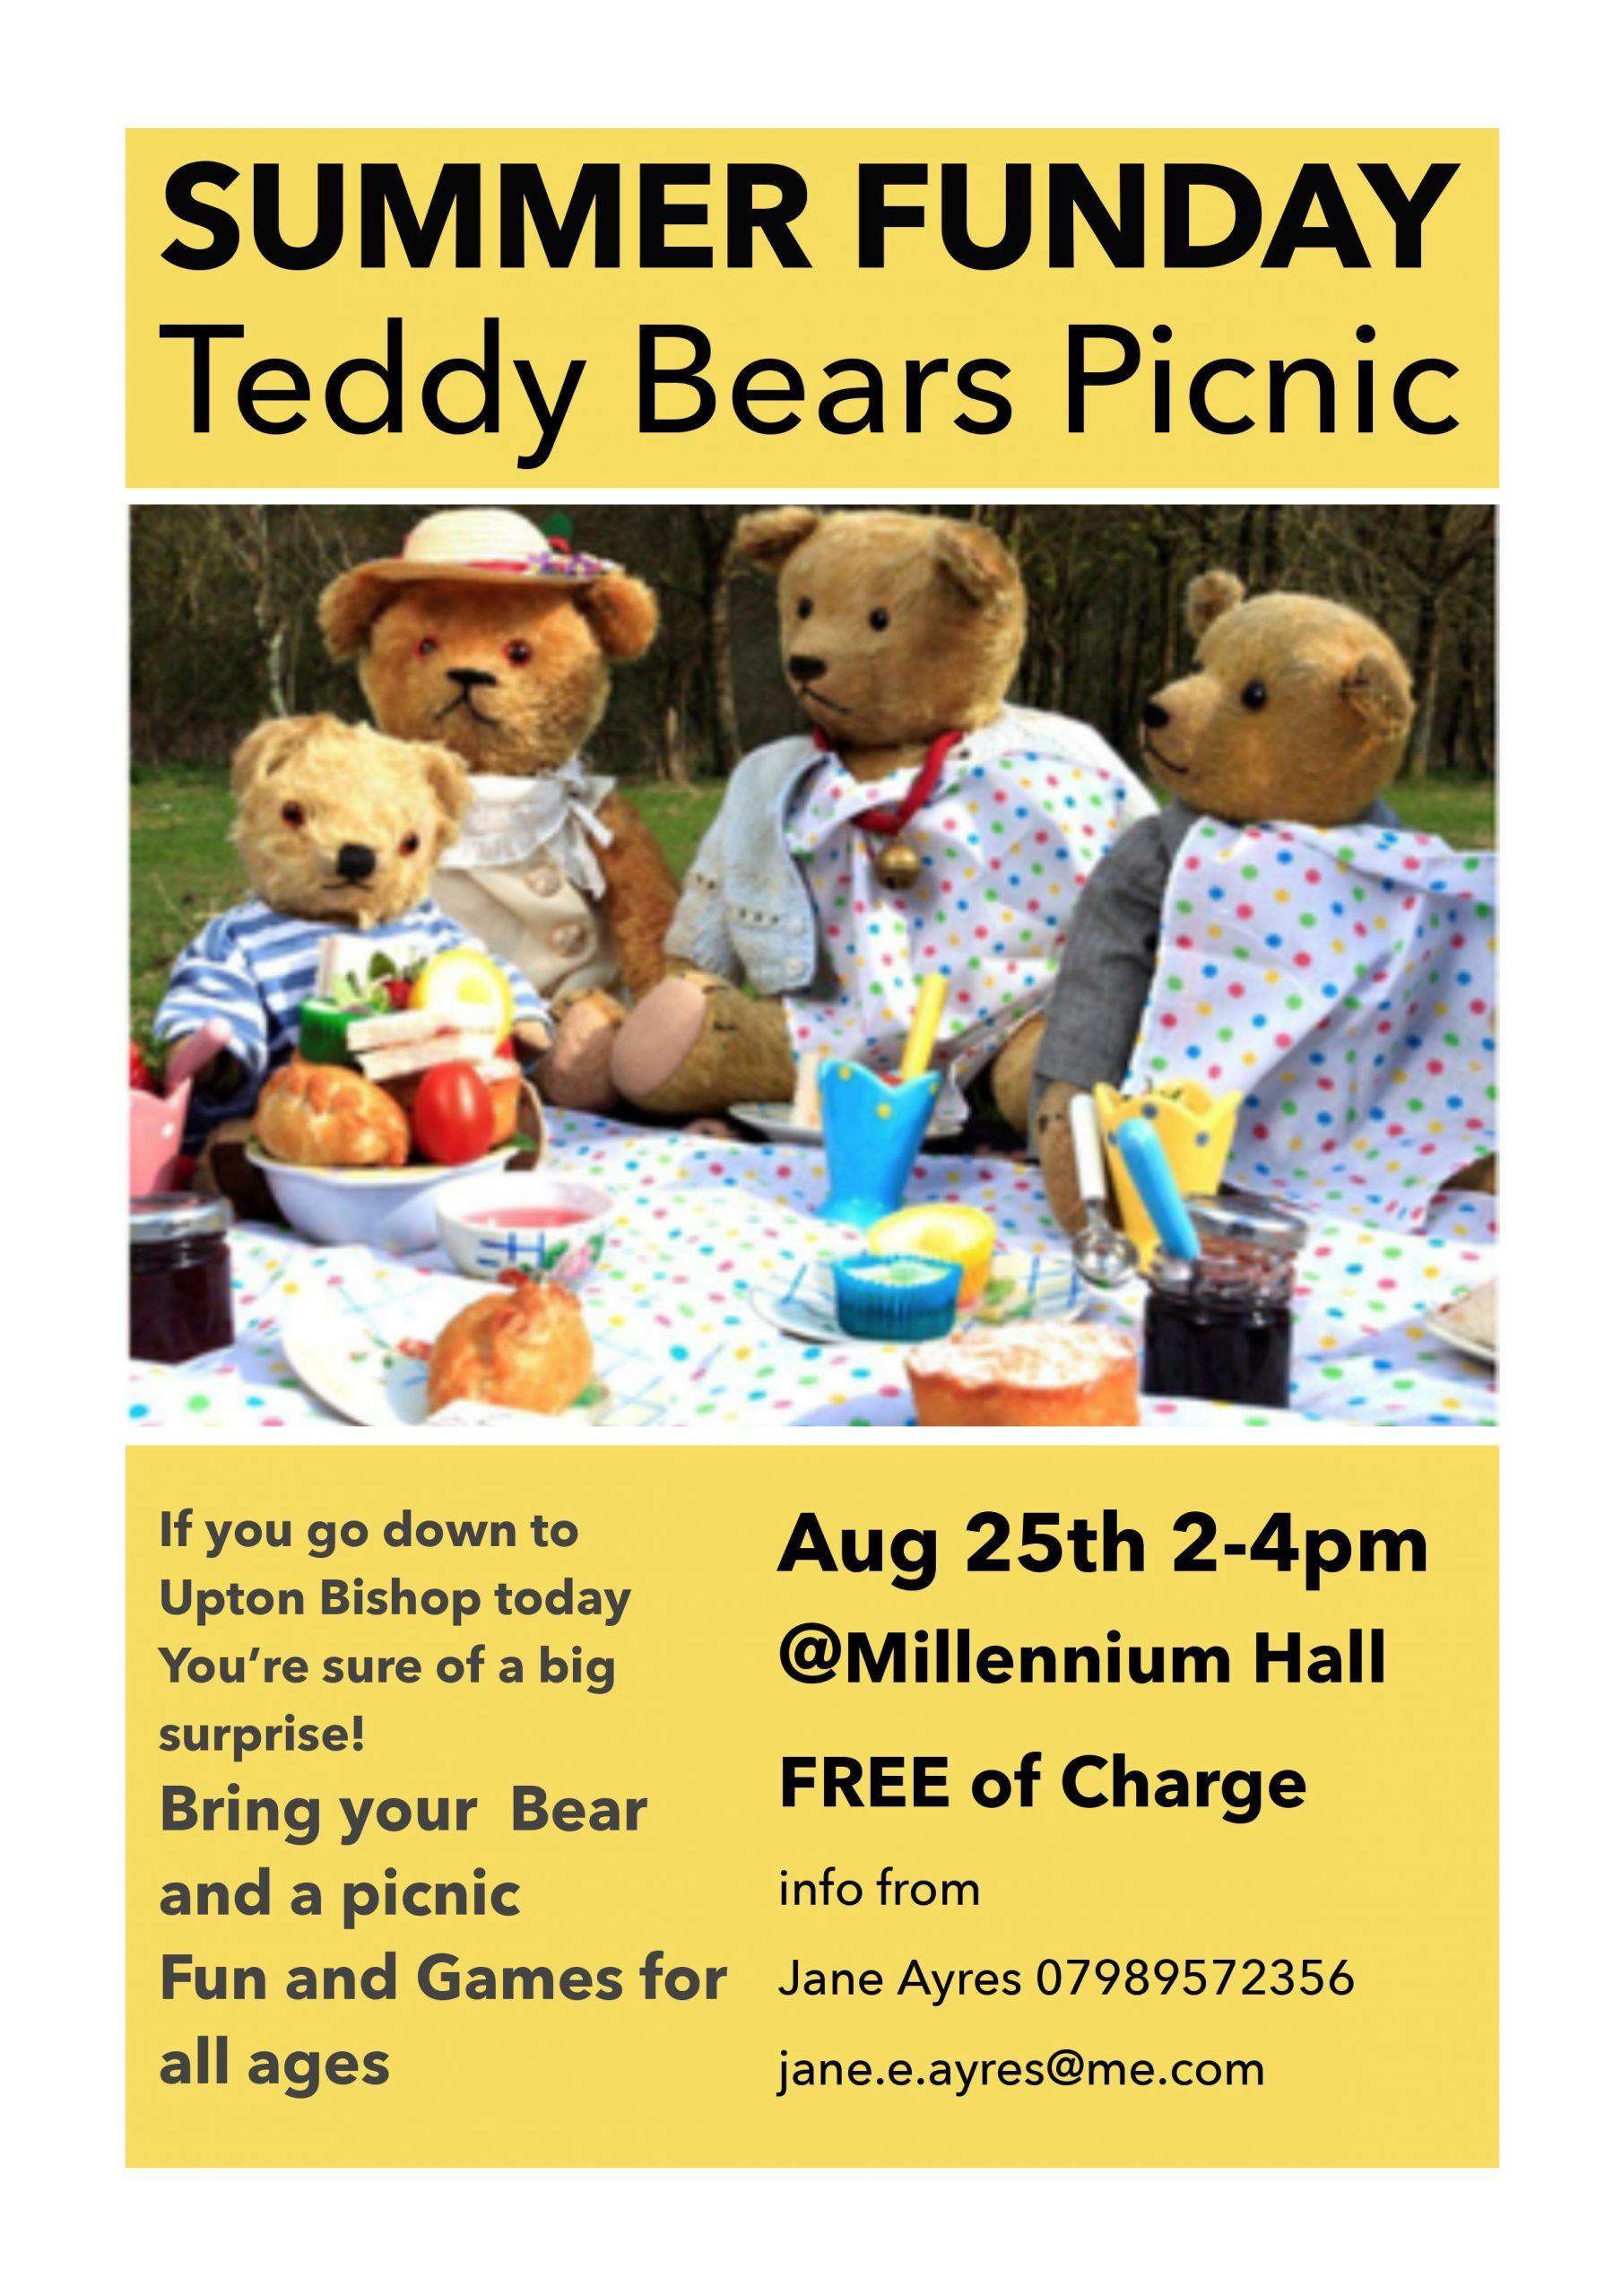 Poster advertising the teddy bears picnic